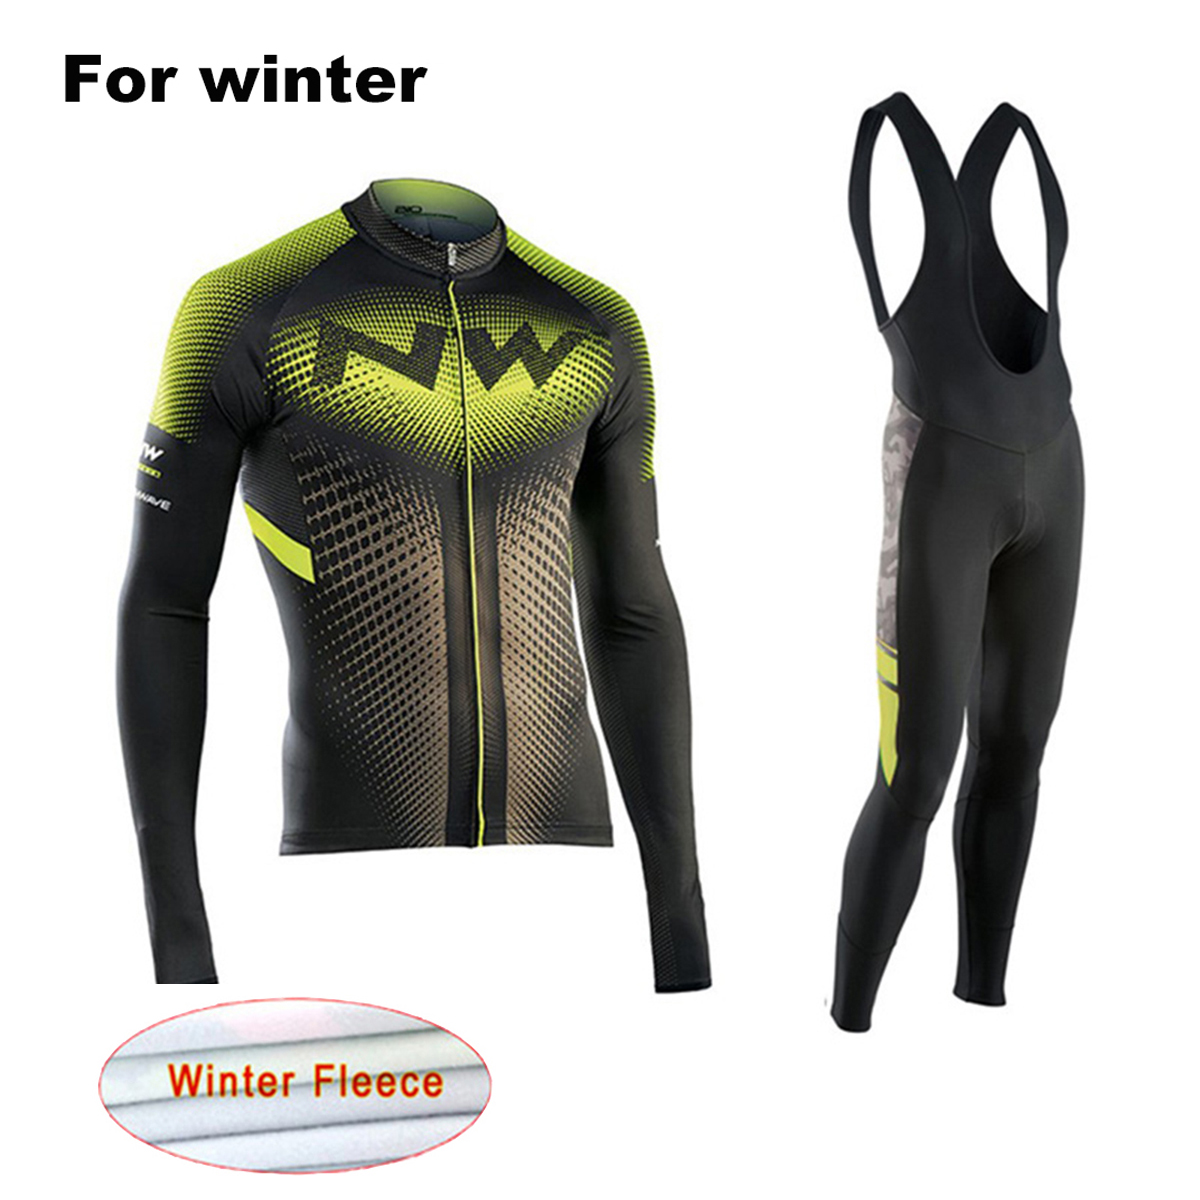 2017 NW Team Winter Thermal Fleece Long Sleeves Bicycle Clothing Bib Set Cycling Jersey Outdoor Sport Coat Suit with 9D Gel Pad black thermal fleece cycling clothing winter fleece long adequate quality cycling jersey bicycle clothing cc5081